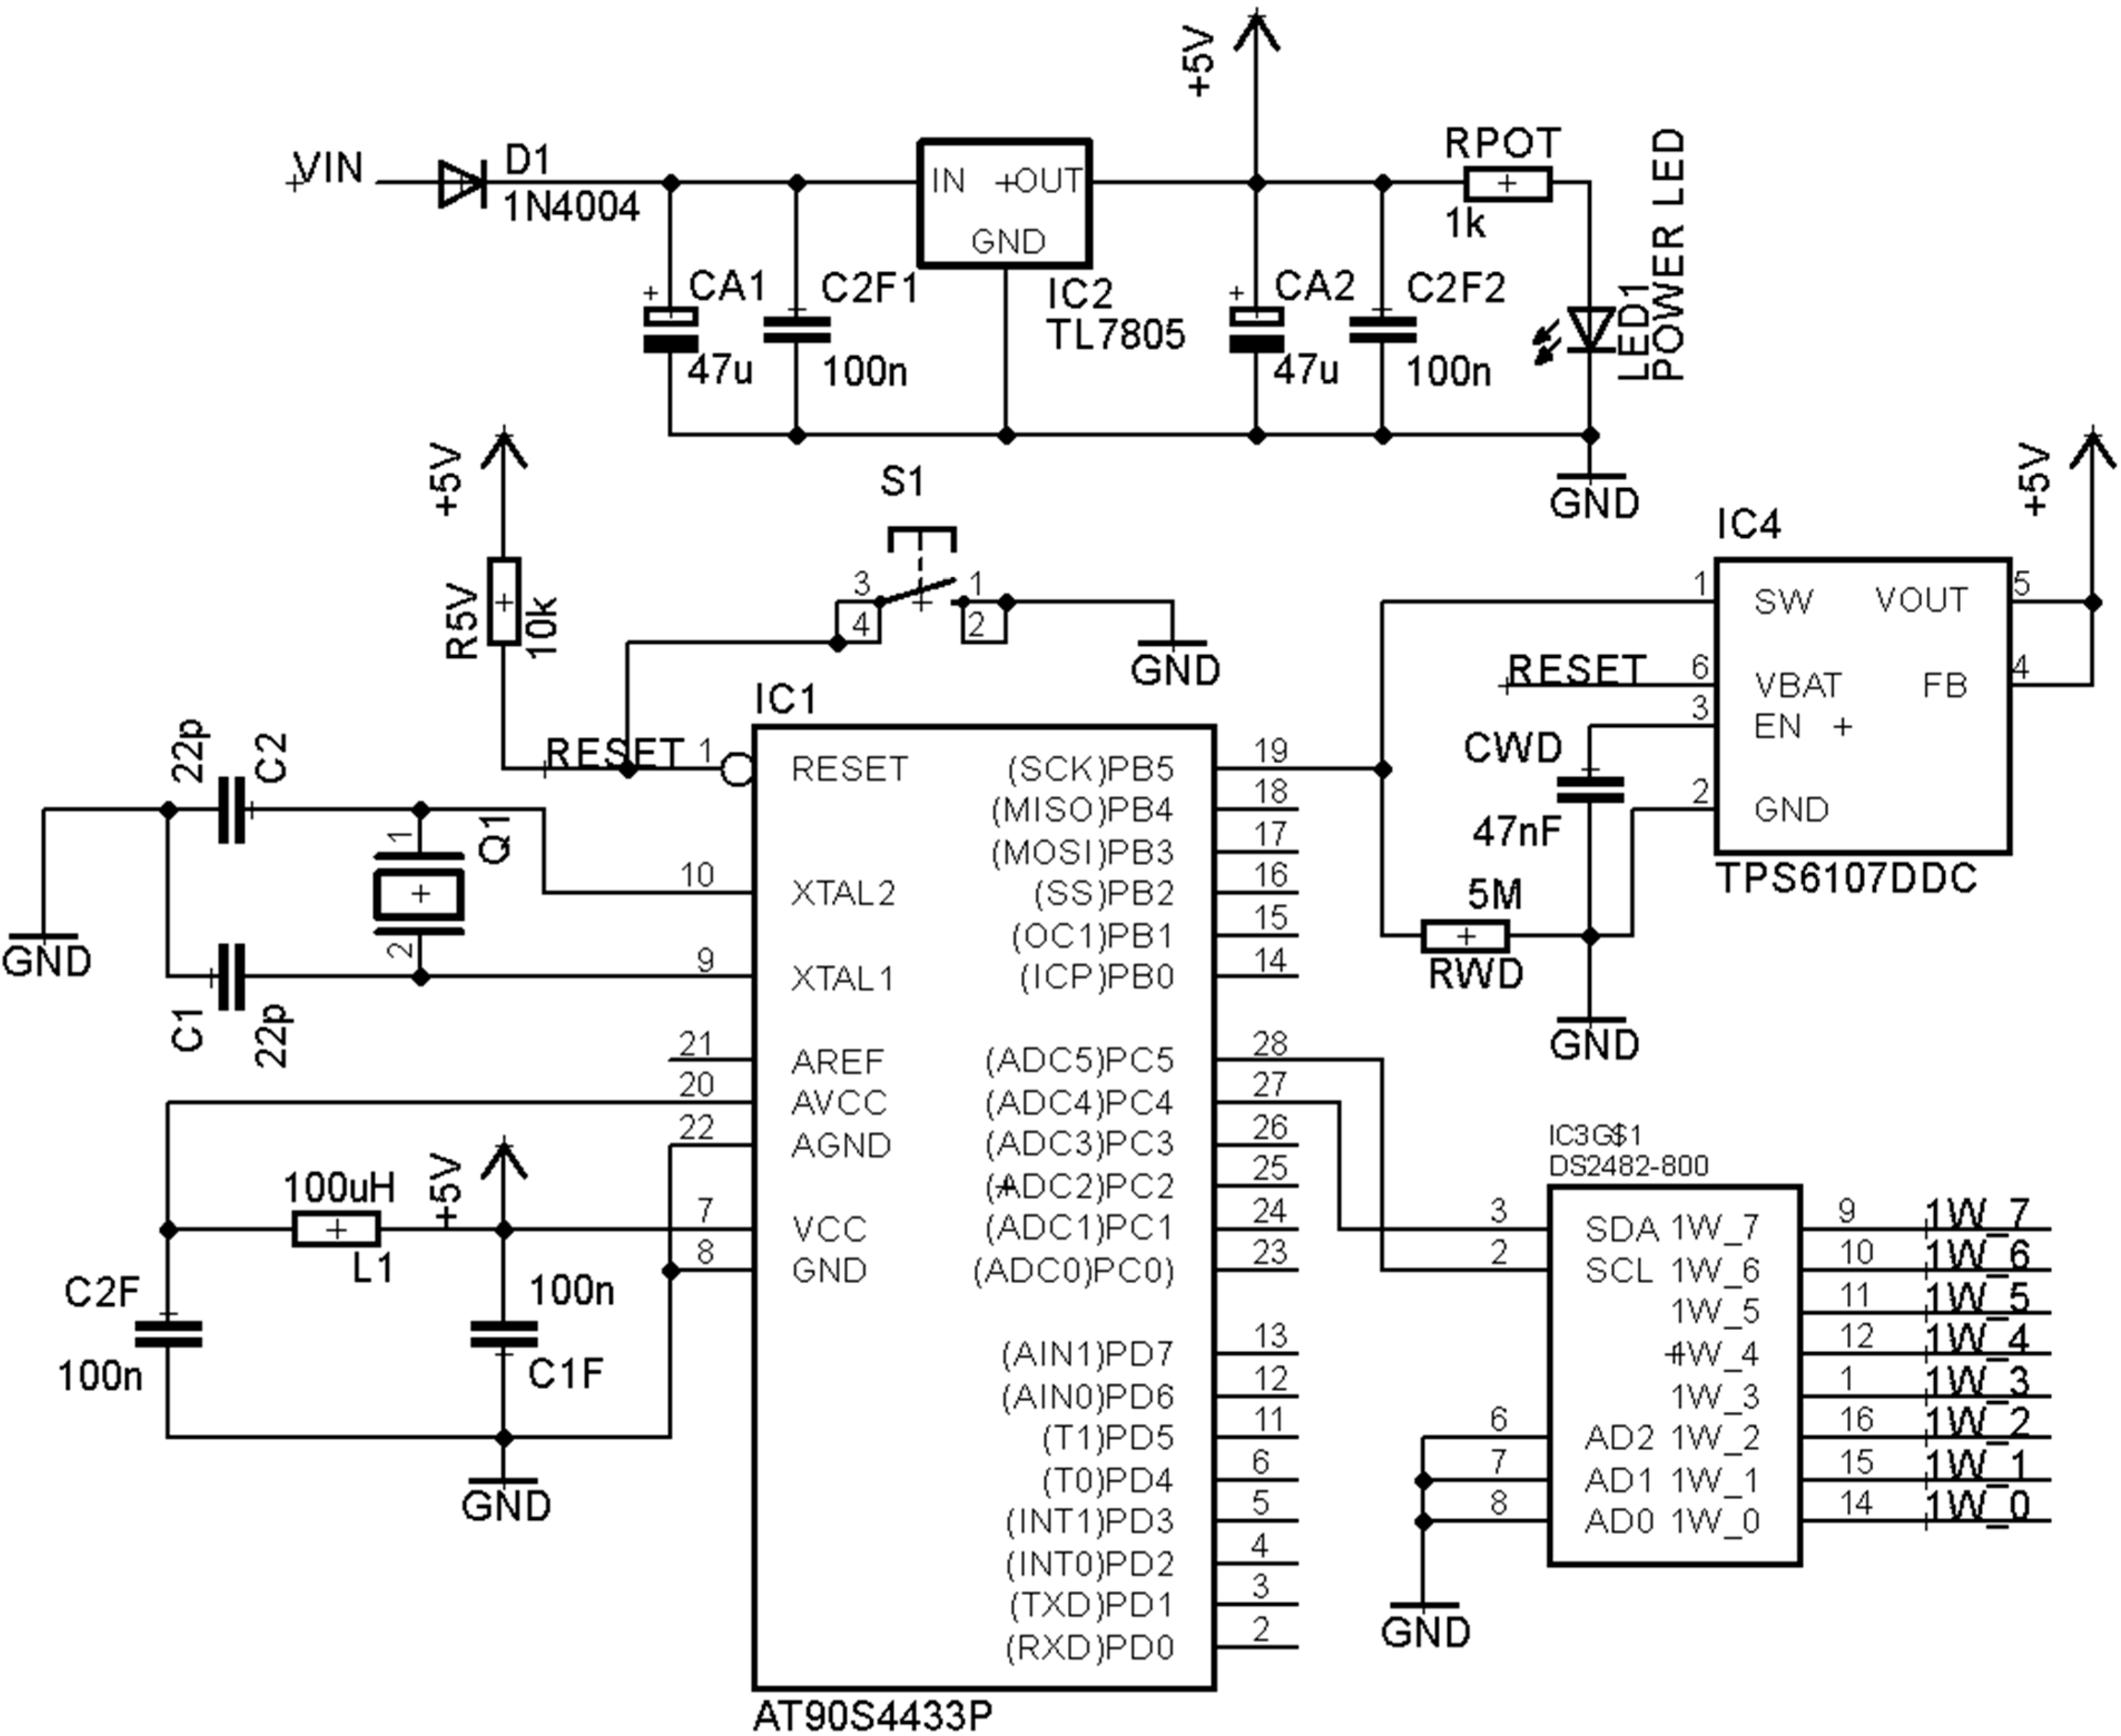 Sensors Free Full Text Design Of A Hybrid Wired Wireless Salt Dogg Controller Wiring Diagram 15 07246 G003 1024 Figure 3 Slave Schematic